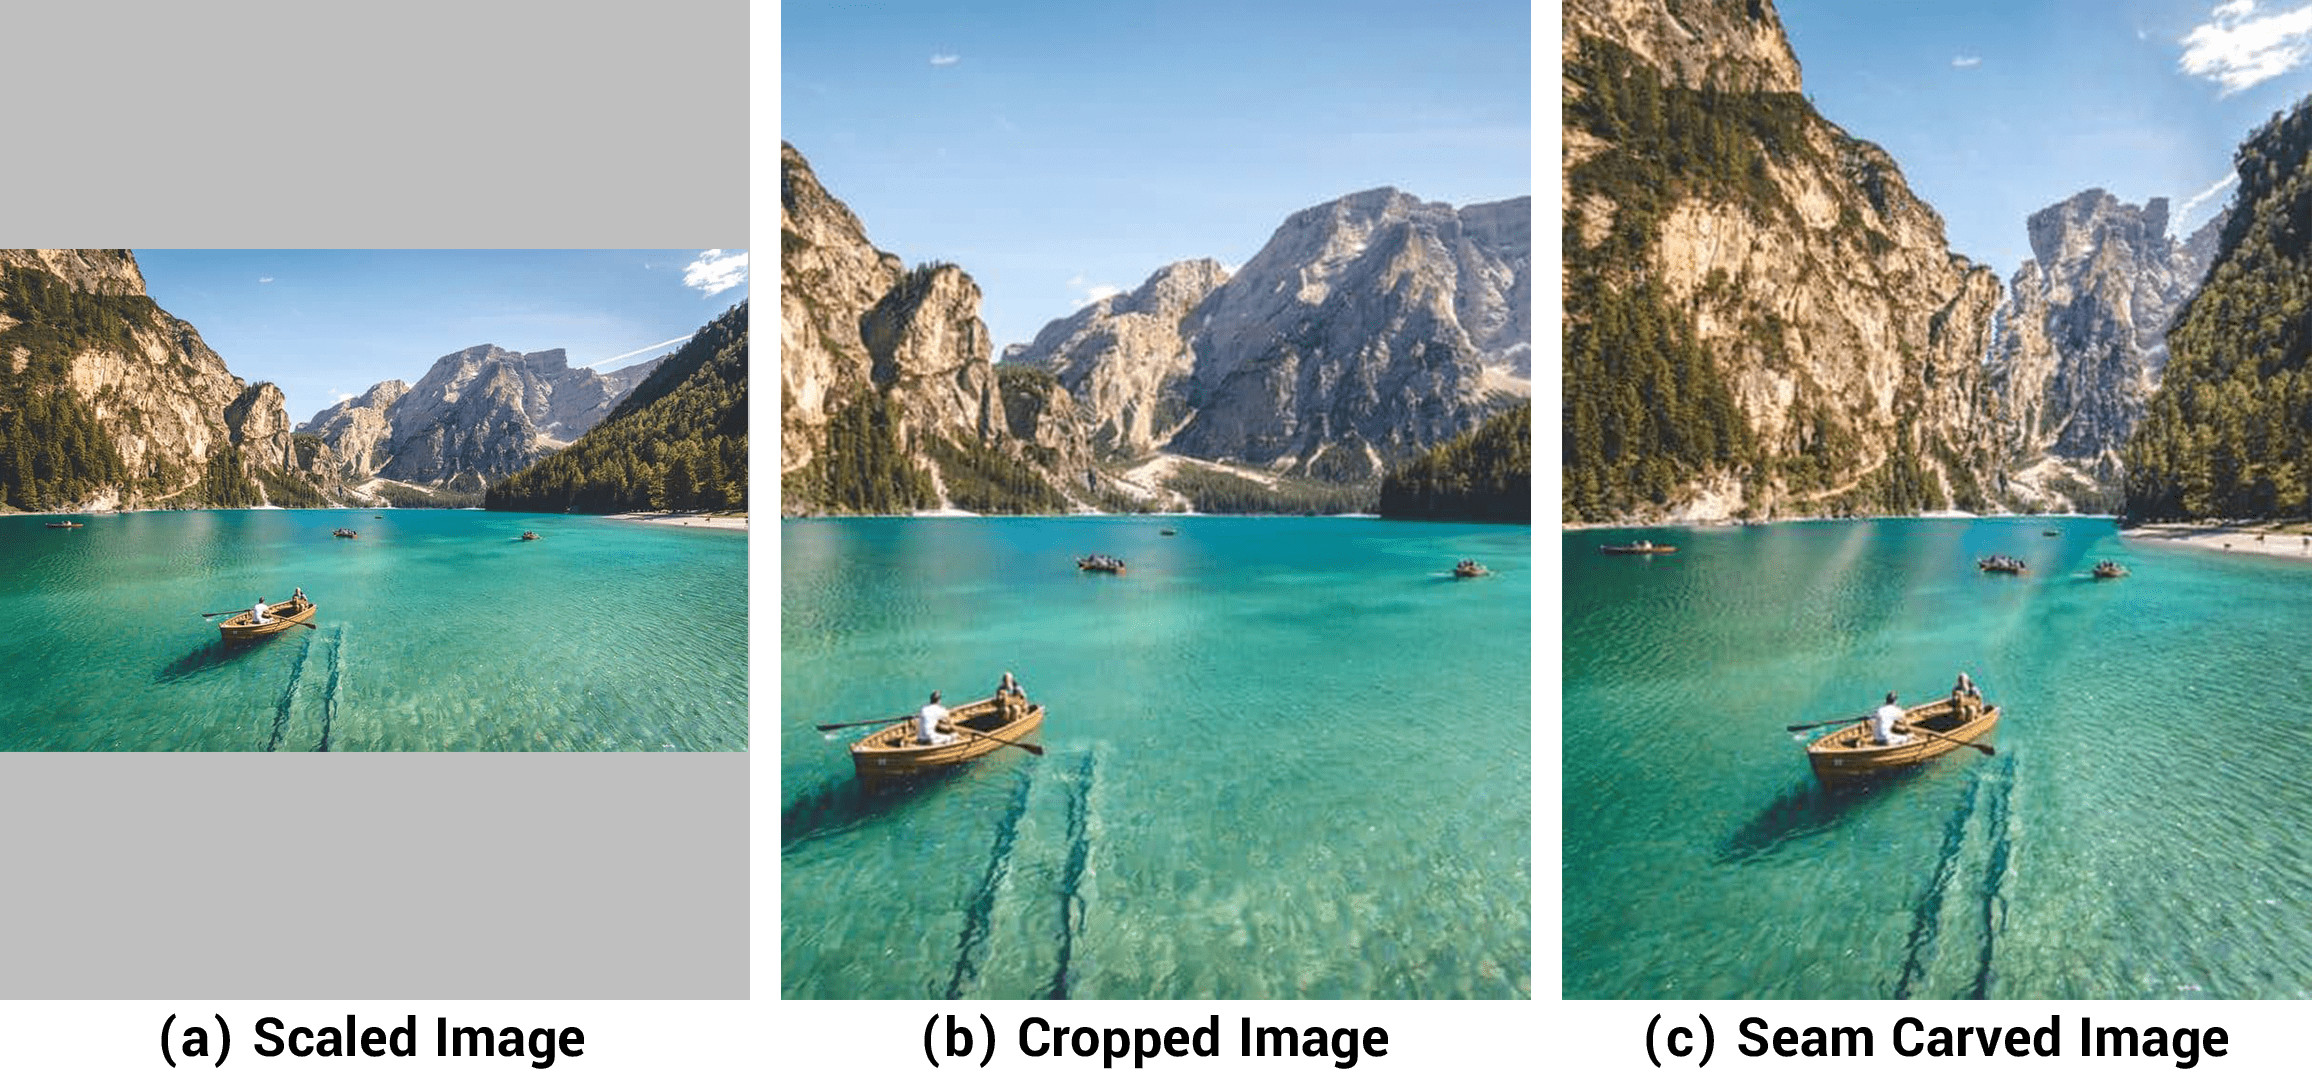 An image comparing our three methods of displaying images: (a) scaling, (b) cropping, (c) seam carving